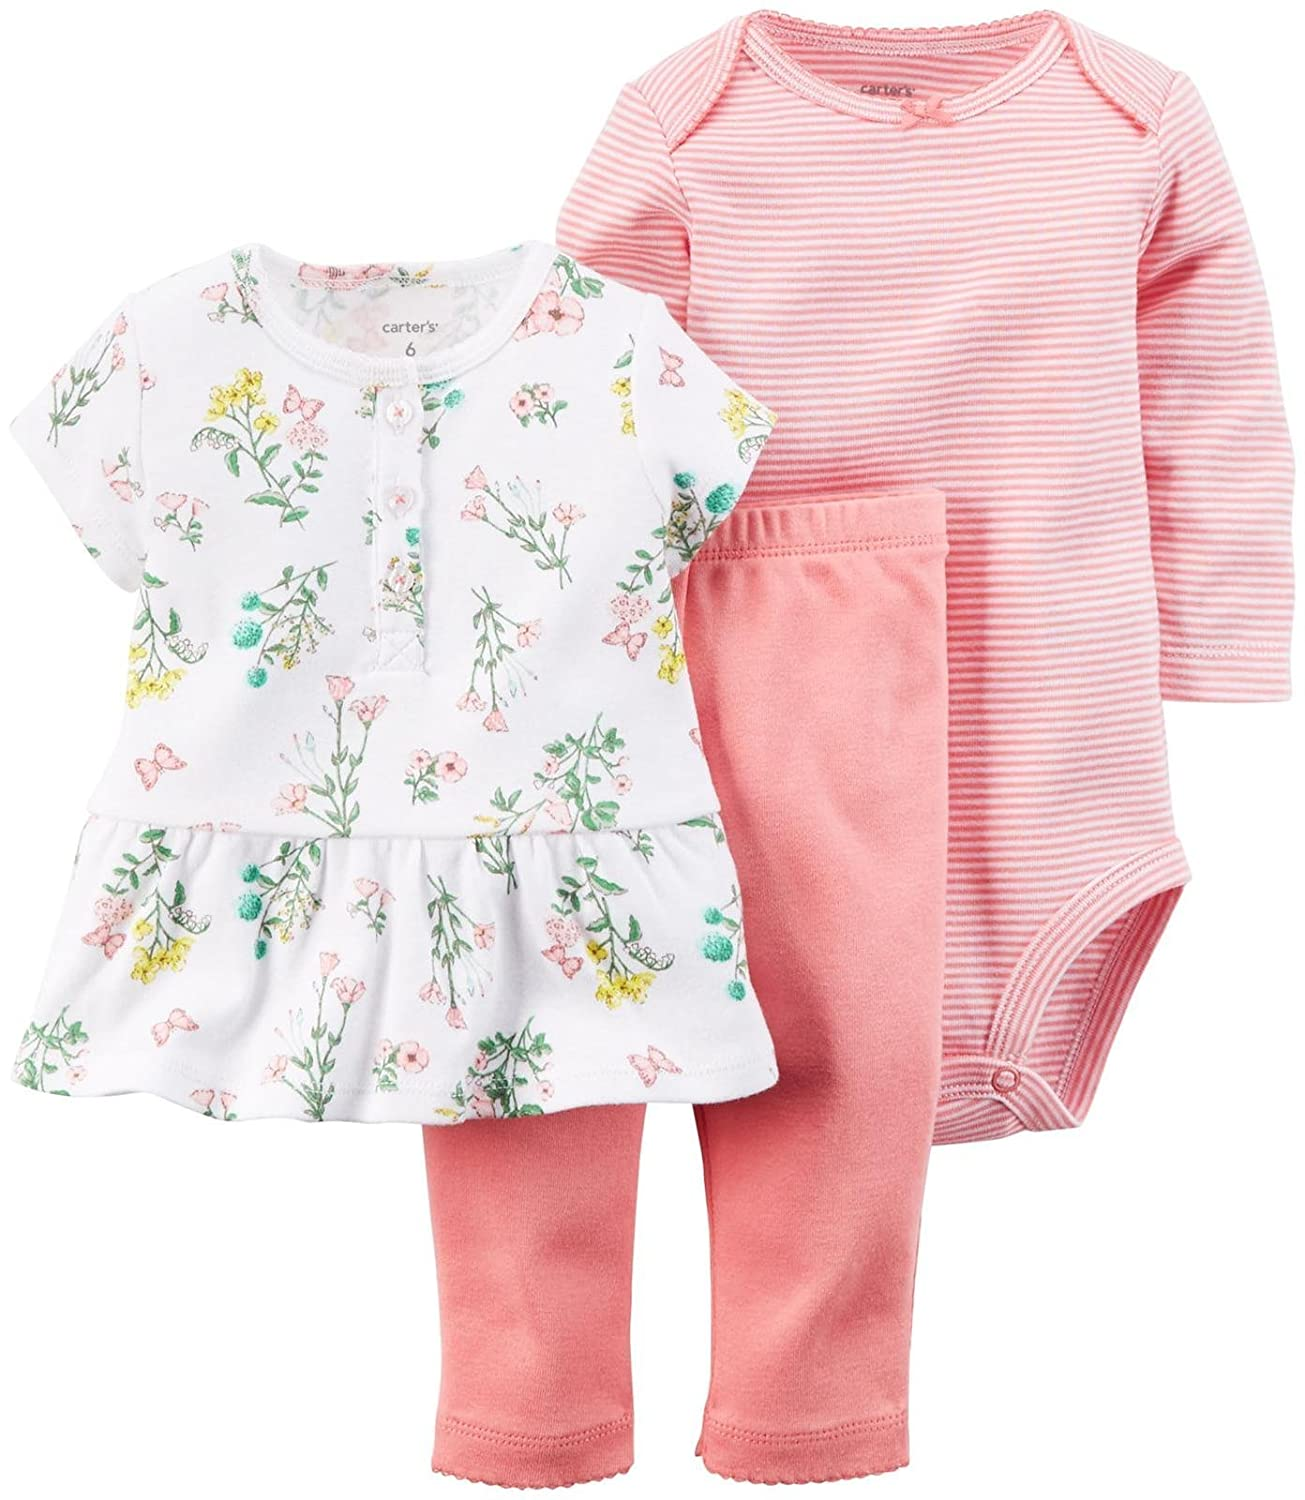 71e154566 Carter\'s 3 Piece Floral Set (Baby) - Pink Carter\'s is the leading brand  of children\'s clothing, gifts and accessories in America, selling more  than 10 ...